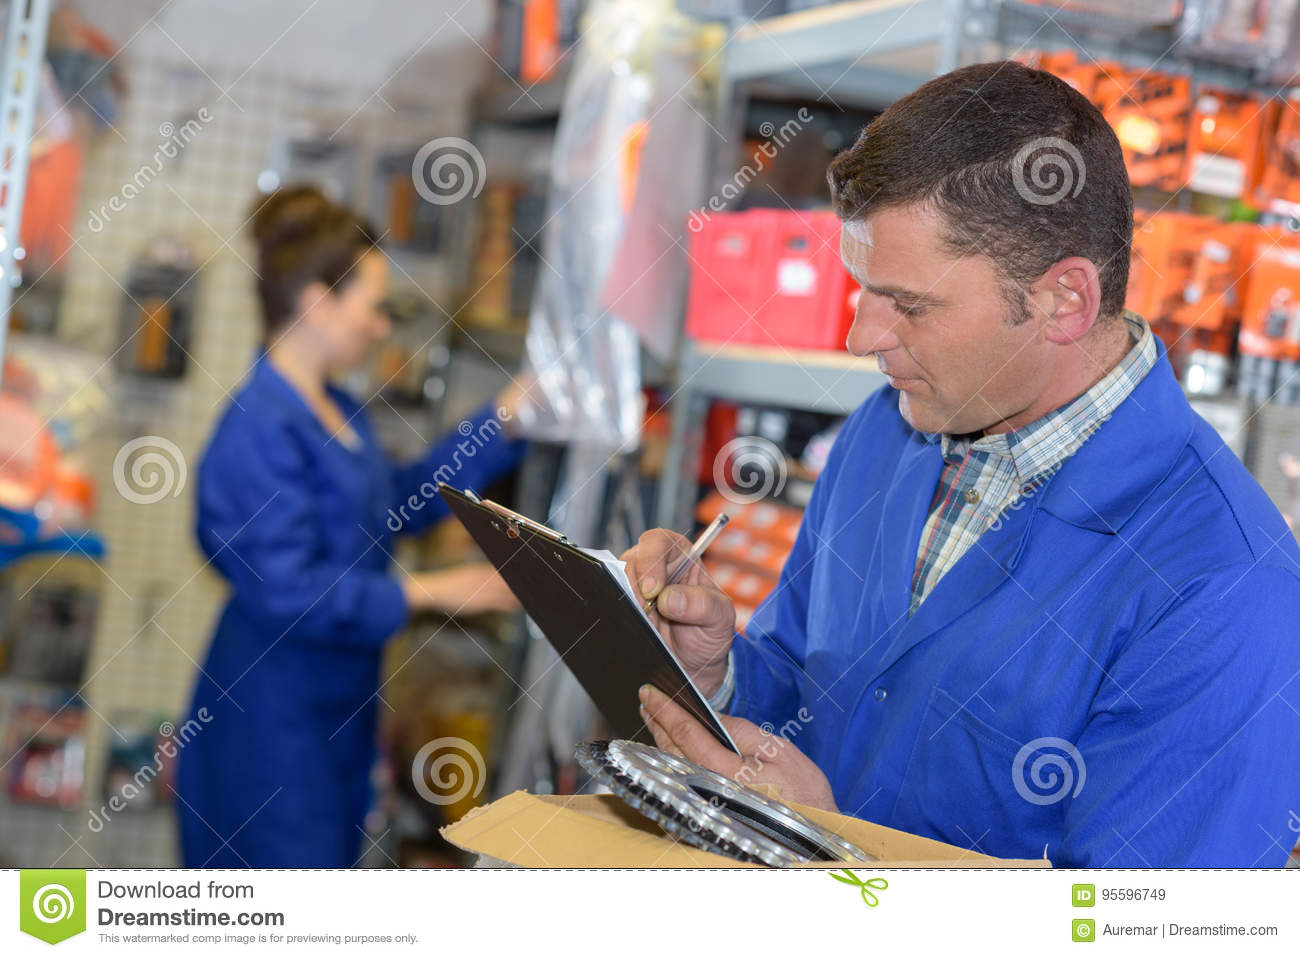 Man inspector doing inventory in warehouse